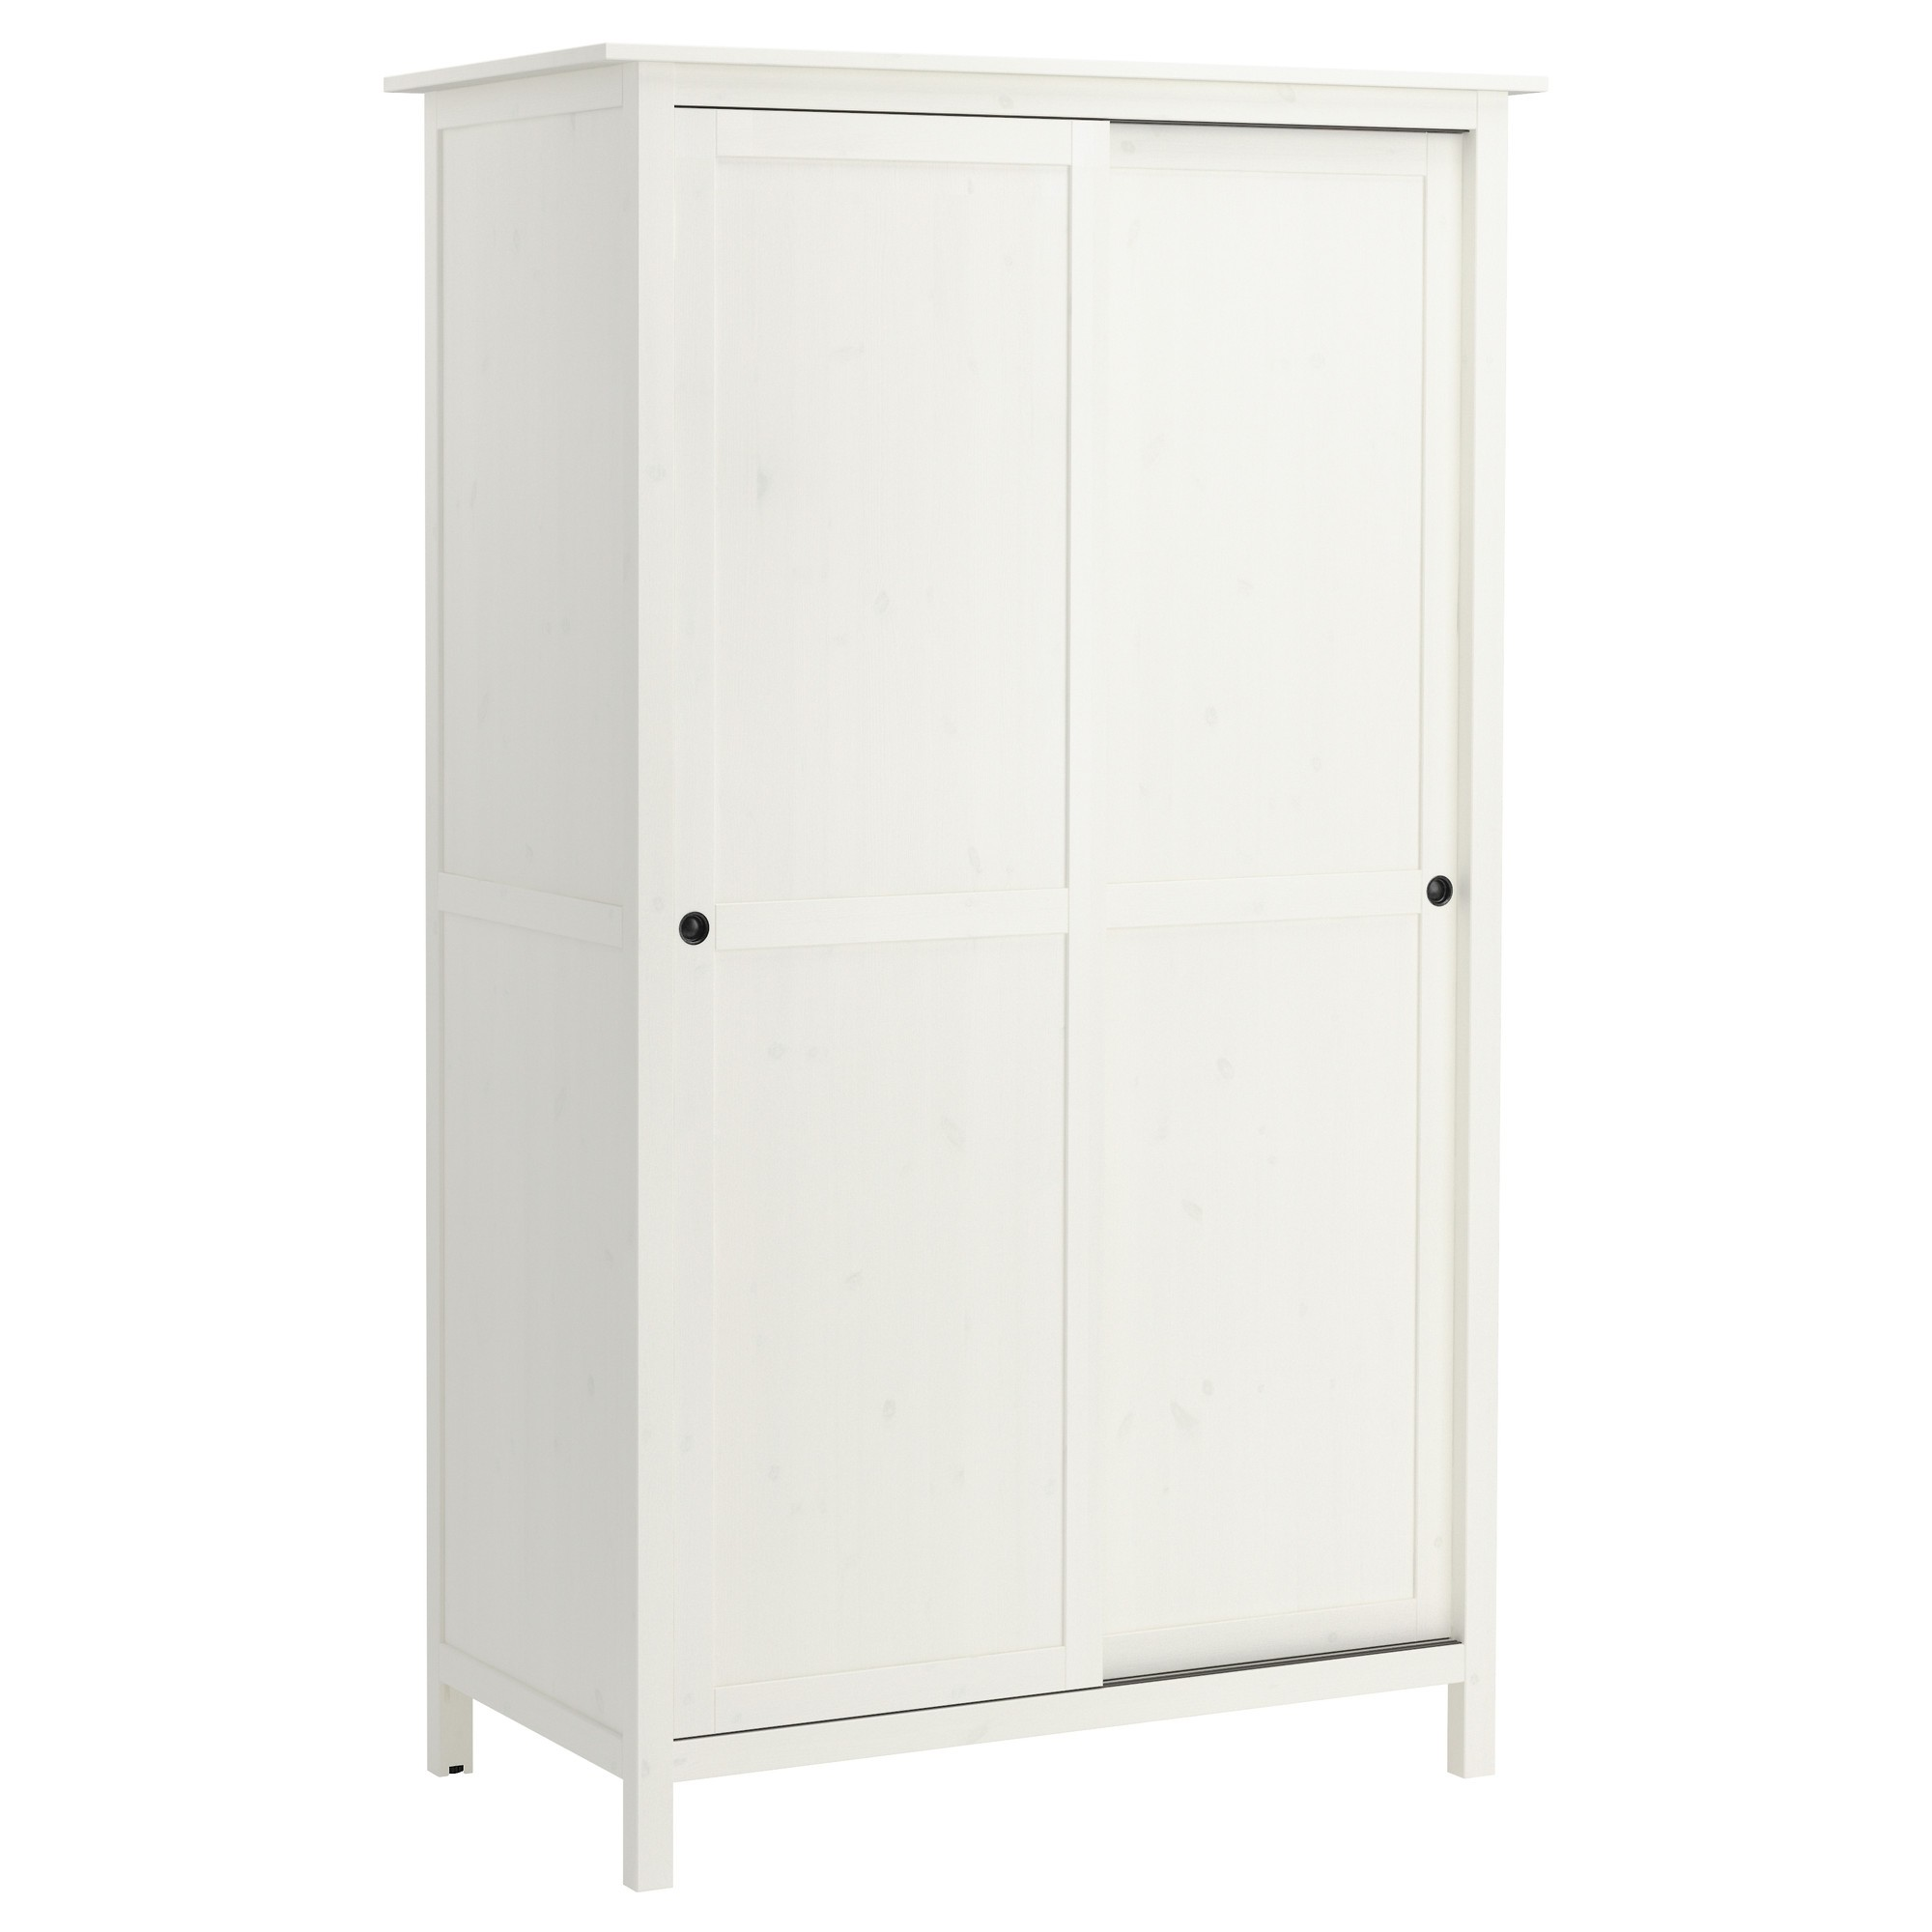 Marvelous armoire 2 portes ikea 7 finest armoire porte for Porte coulissante salon ikea